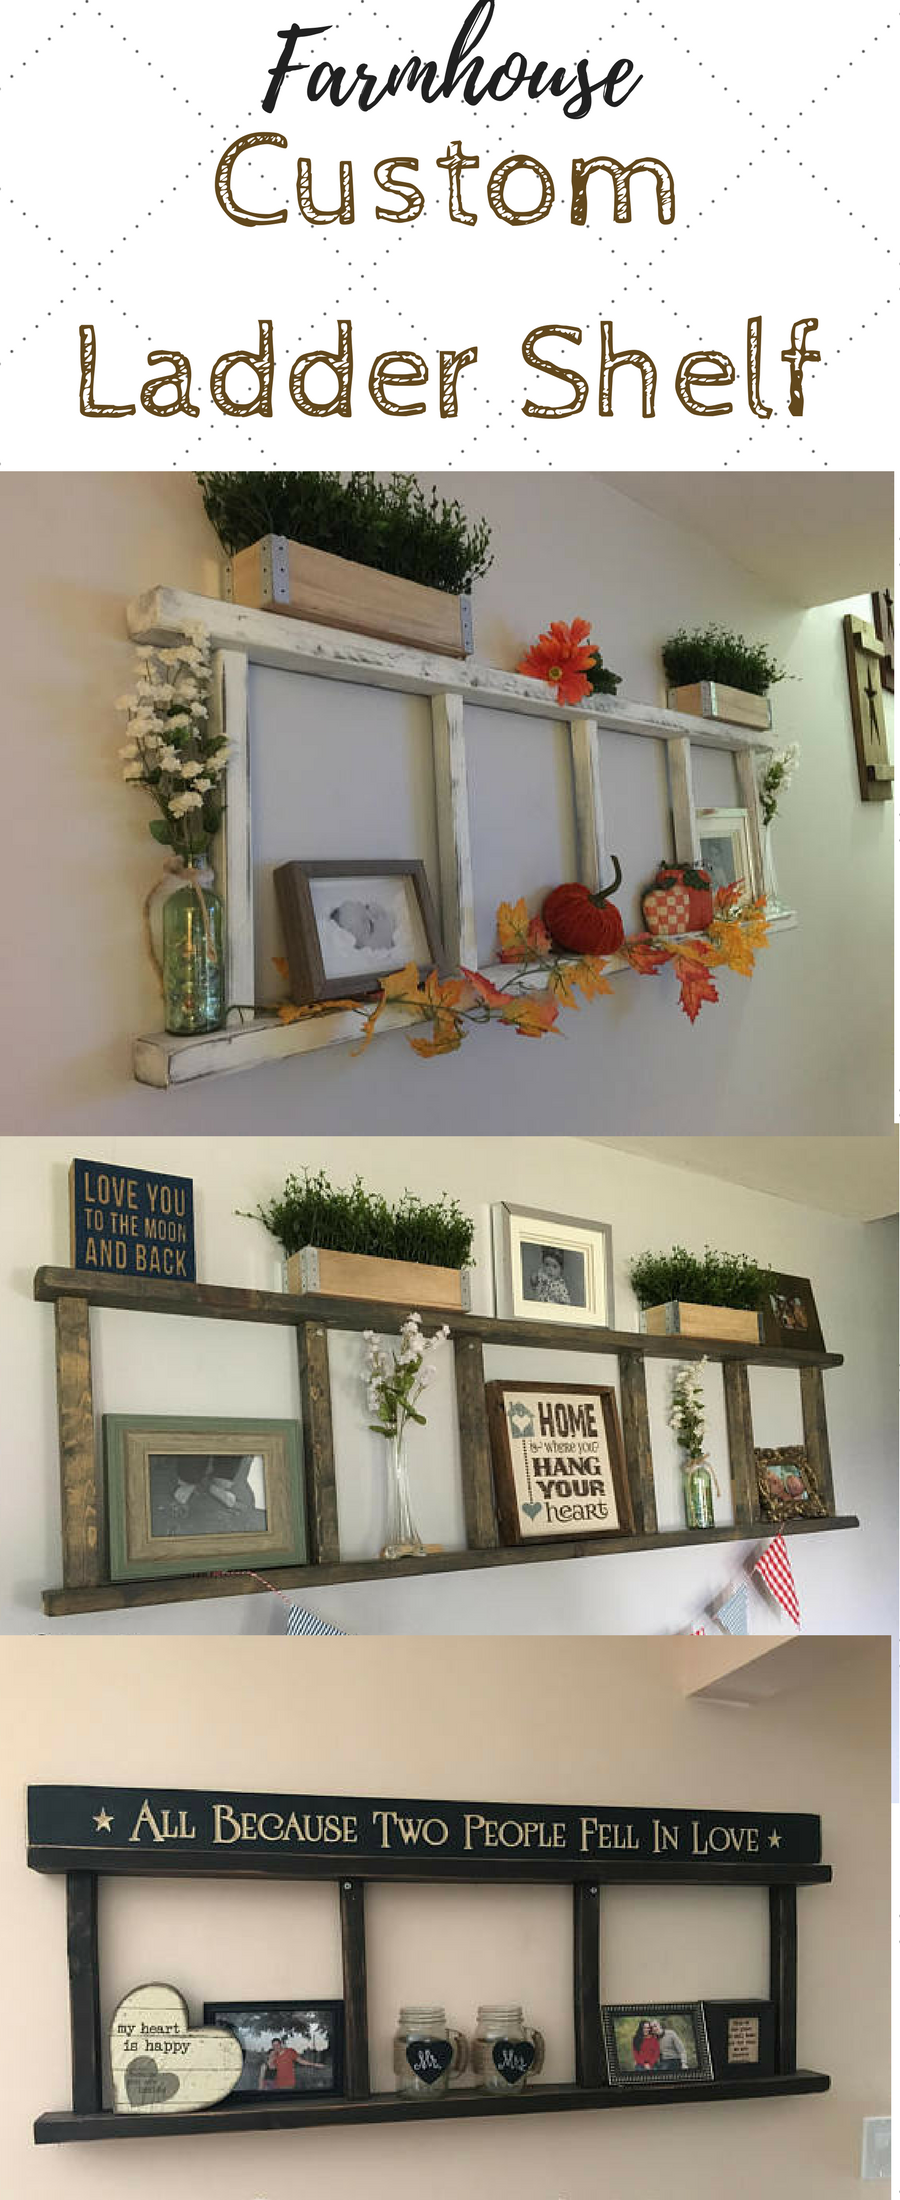 Need This Farmhouse Ladder Shelf In My Living Room To Display Photos Etc Farmhousestyle Rusticdeco Decor Farmhouse Decor Living Room Farm House Living Room